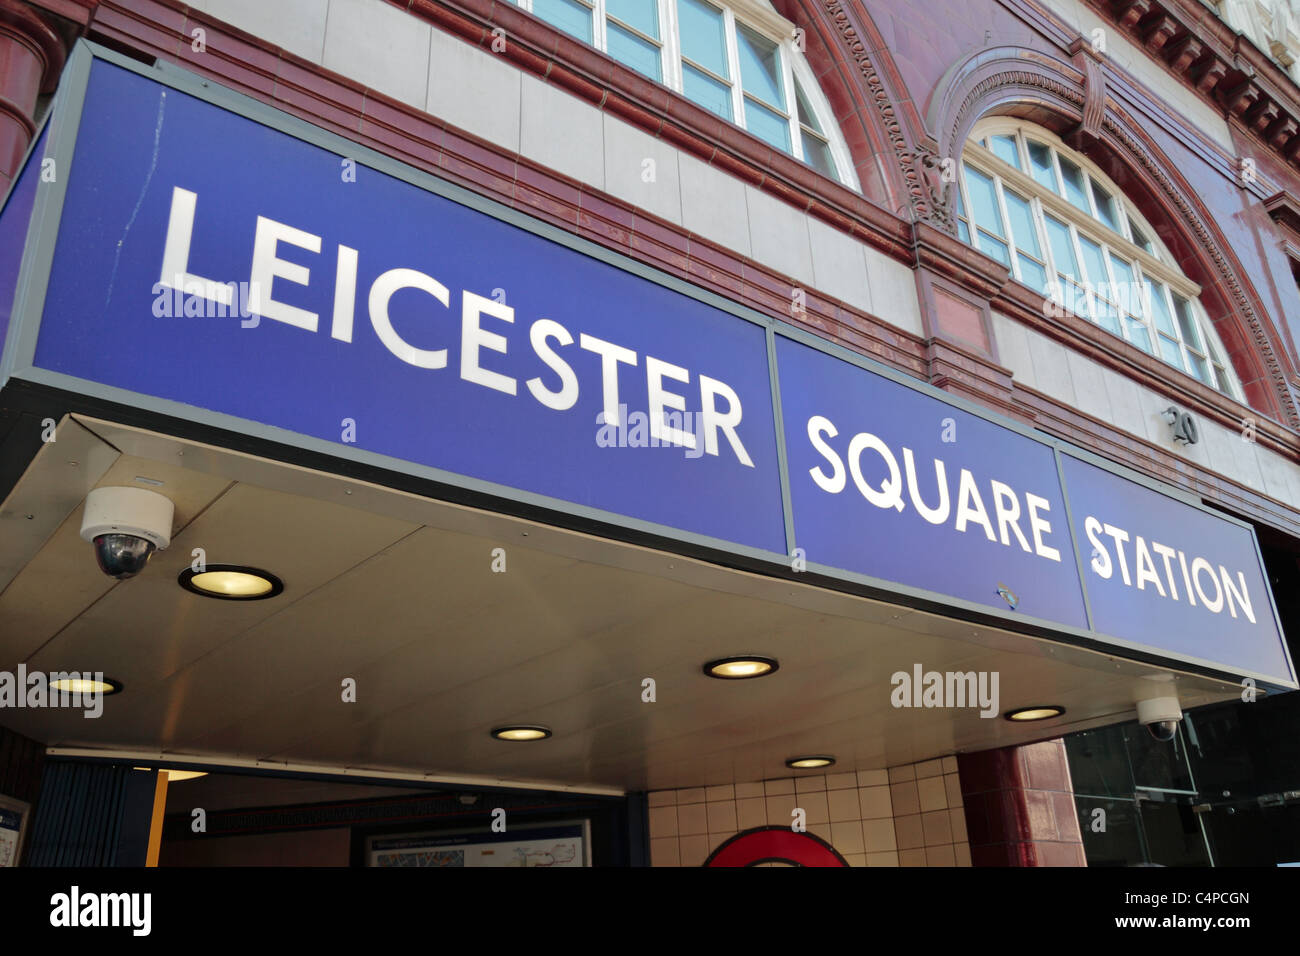 Entrance to the Leicester Square Tube station in Central London, UK. - Stock Image